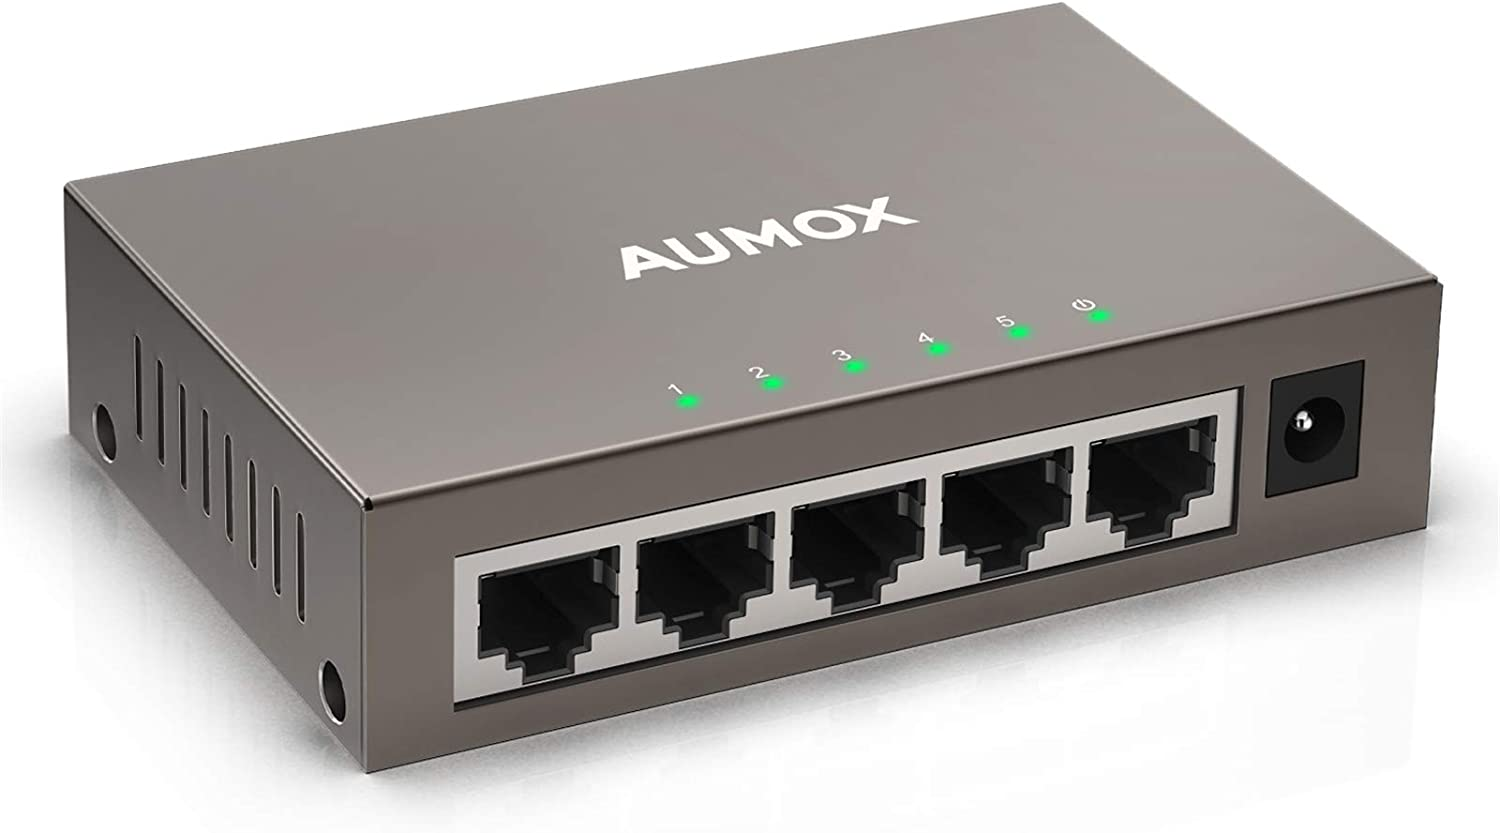 best ethernet switch, best ethernet switch for gaming, best gigabit switch, best network switch, ethernet switch for gaming, gaming switch